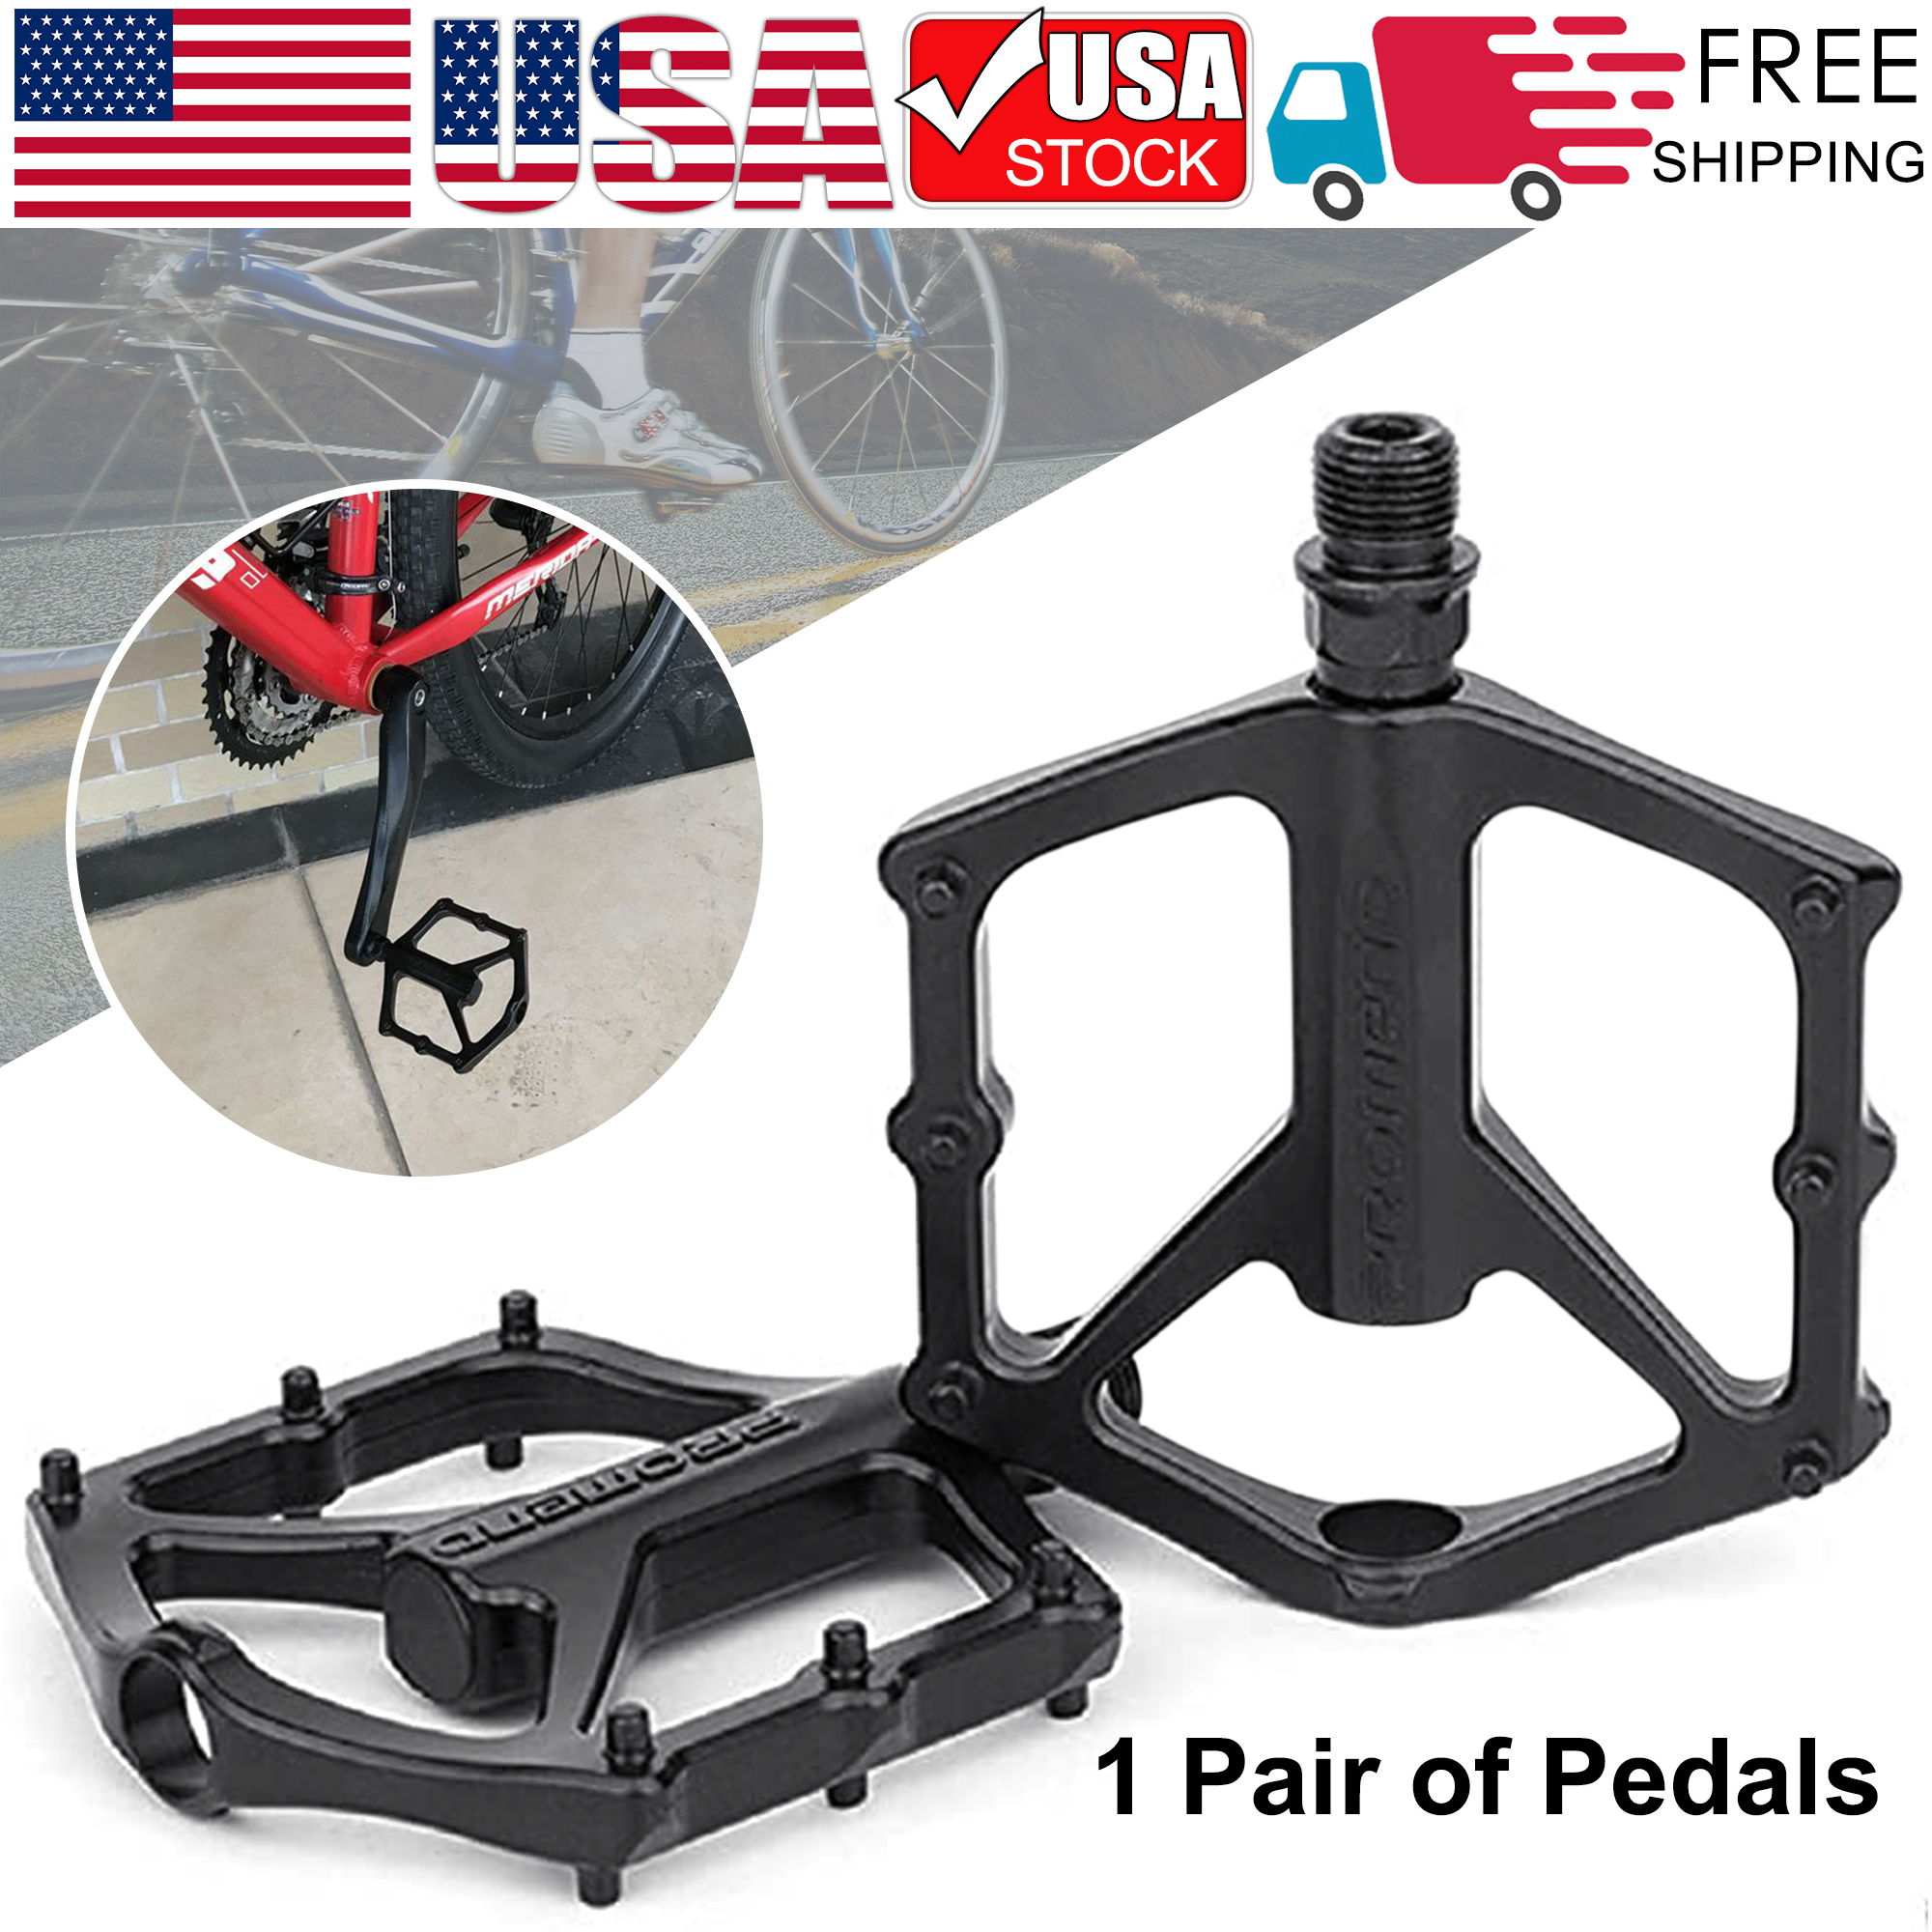 1 PAIR Bicycle Road Mountain Bike Pedals Aluminum Alloy Sealed Bearing Black USA